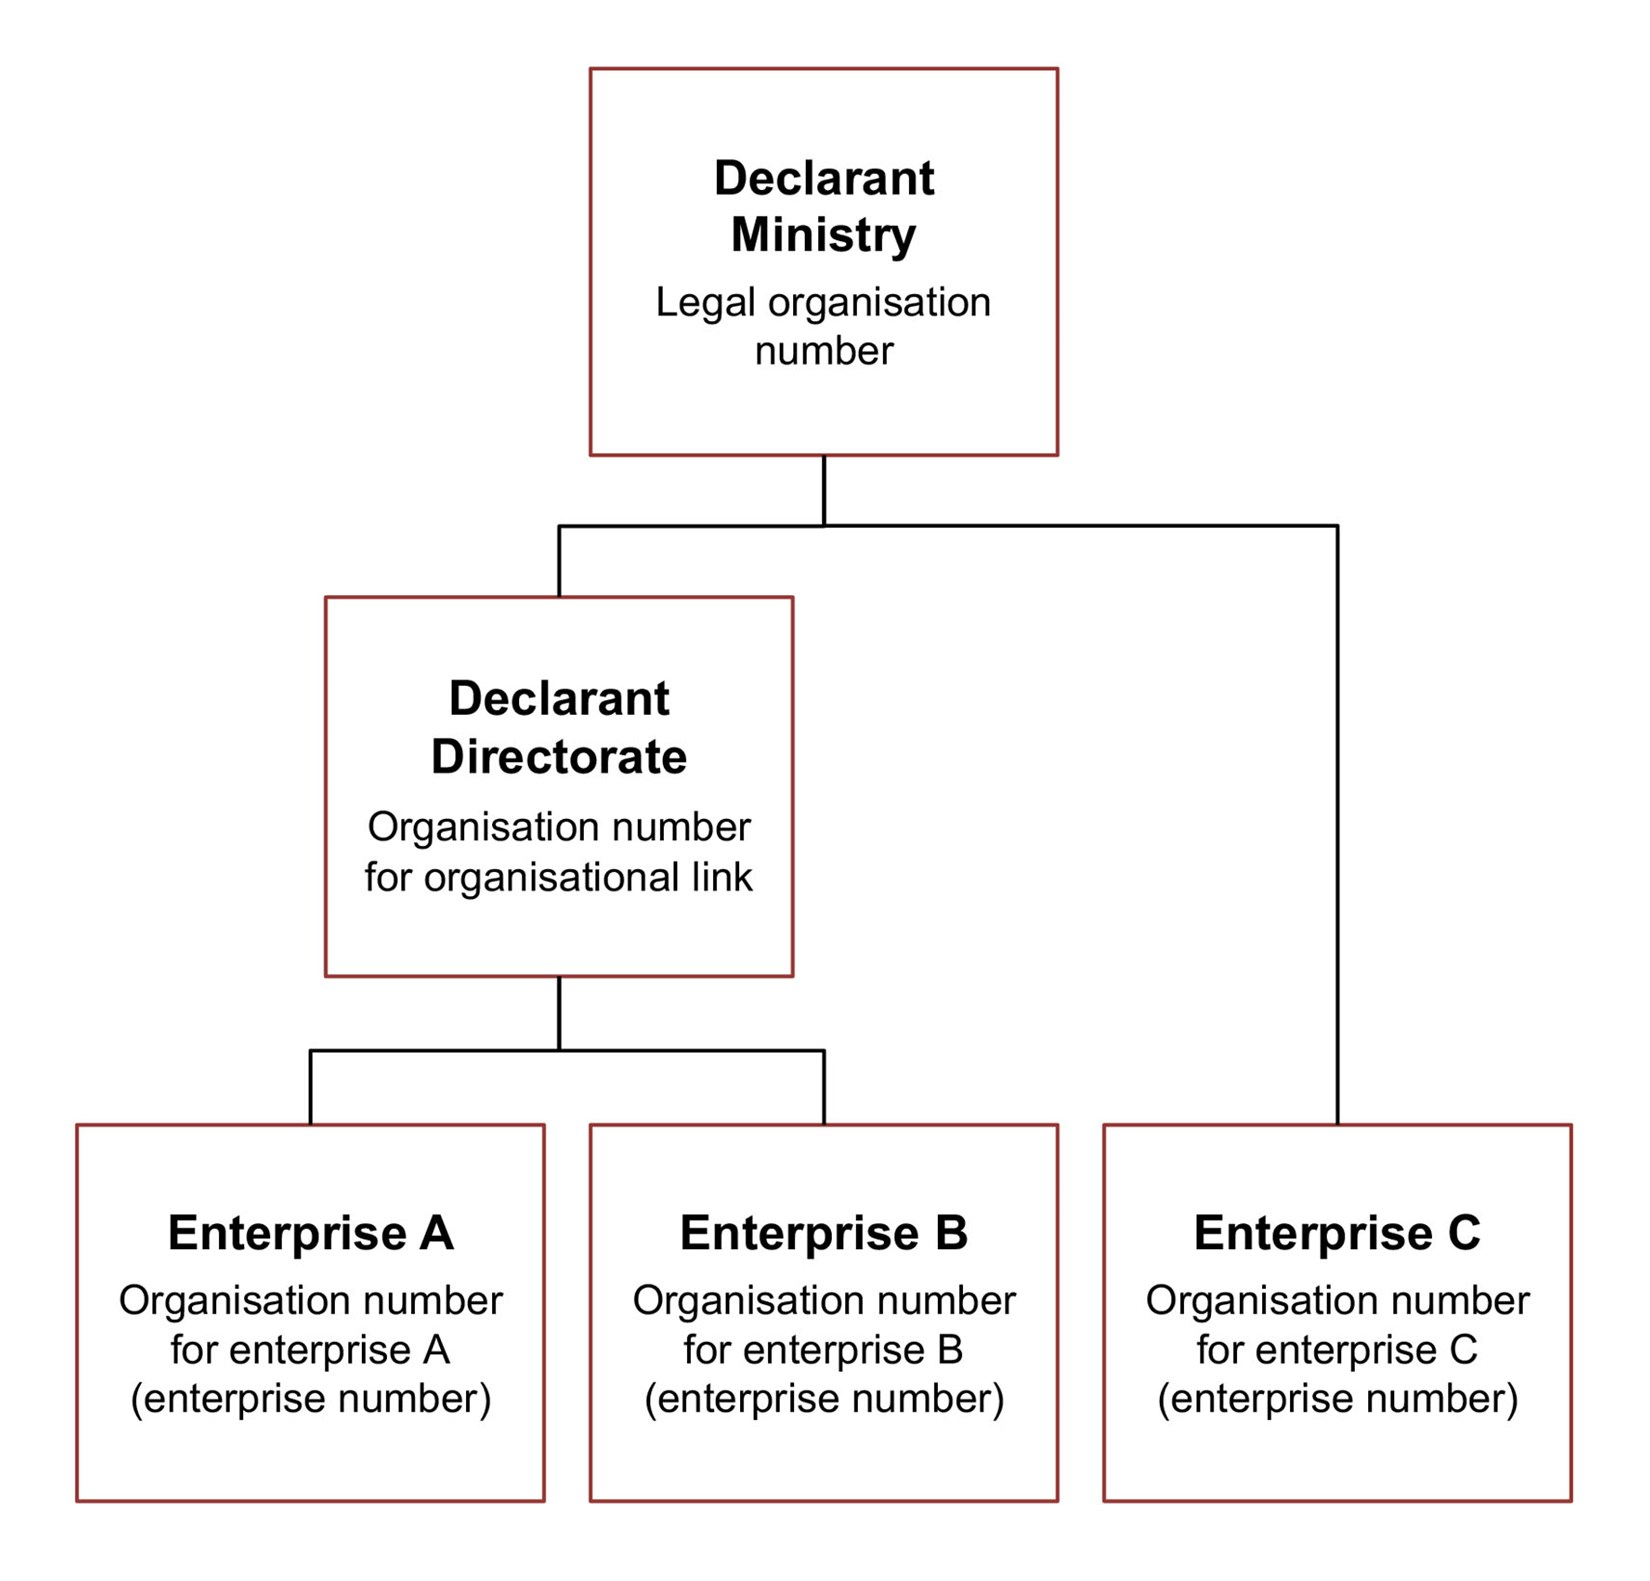 Diagram. Specify the legal organisation number for the declarant ministry and the organisation number for enterprise, for enterprise C. Specify the organisation number for organisational link, for the declarant directorate and the organisation number for enterprise, for enterprises A and B. The text in the article explains this in more detail.